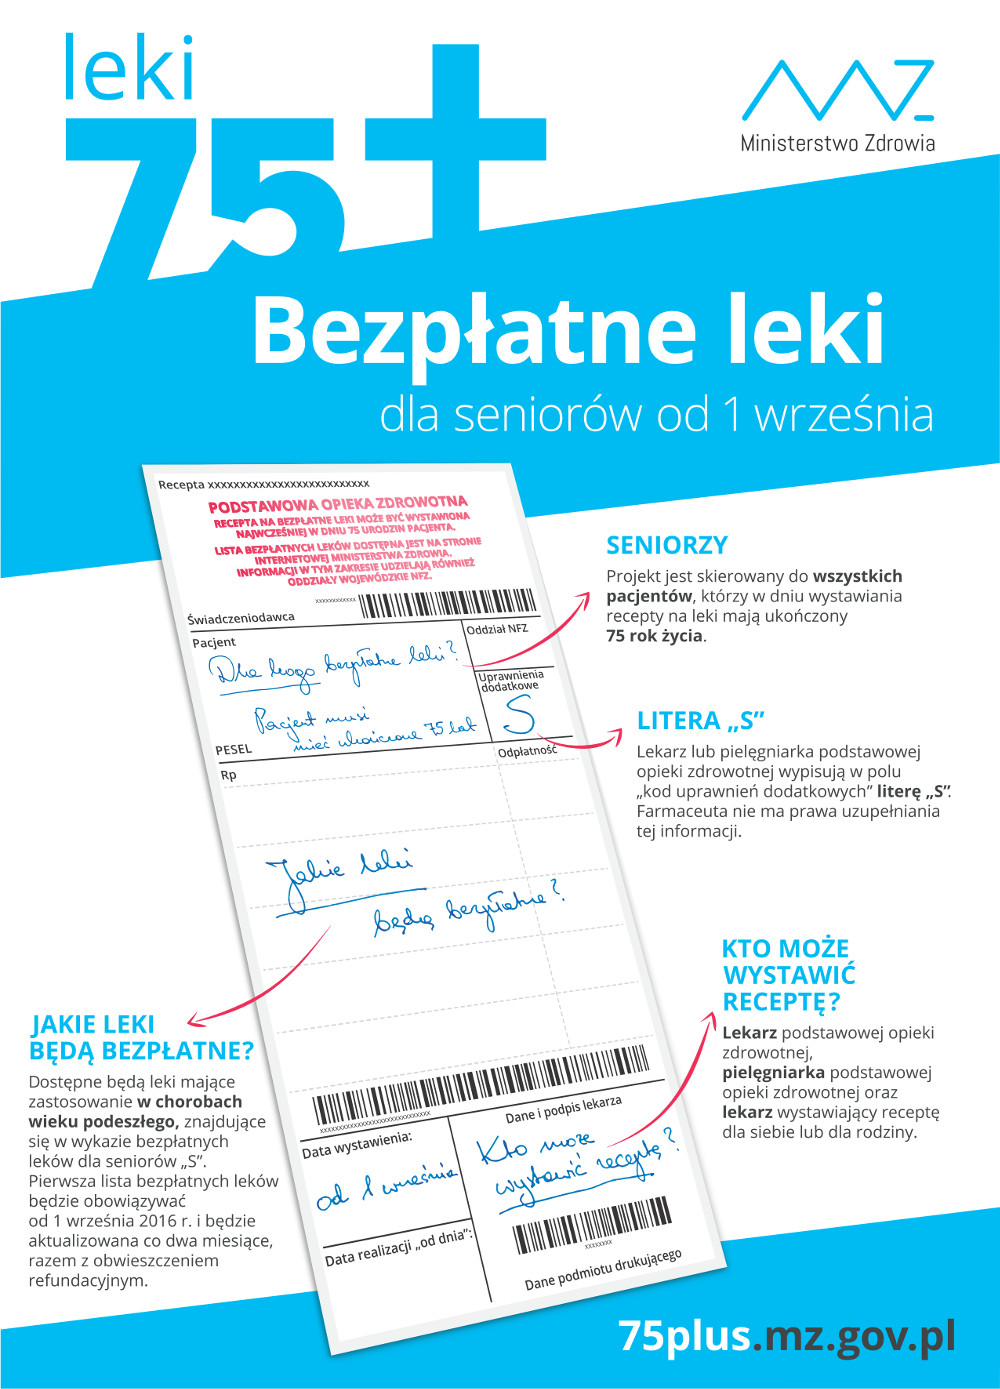 Leki 75 plus-plakat_01